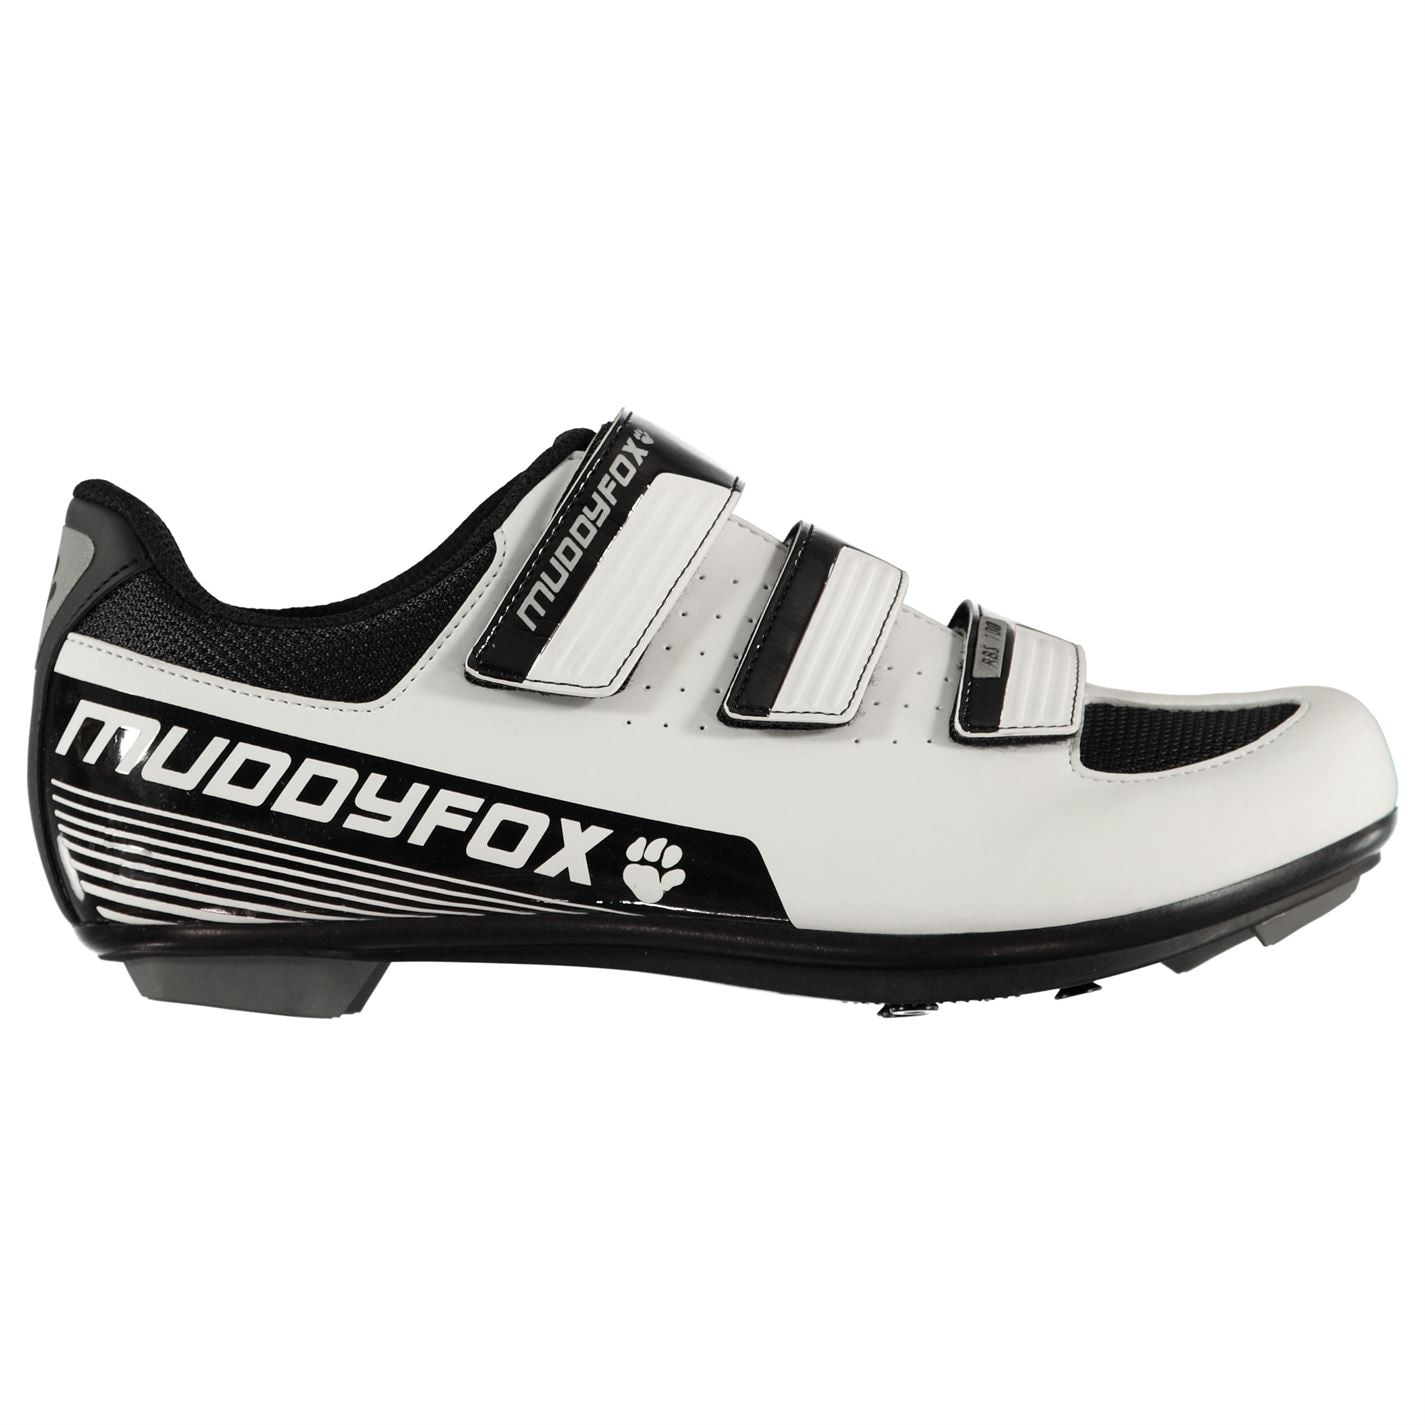 Muddyfox RBS100 Mens Cycling Shoes White/Black